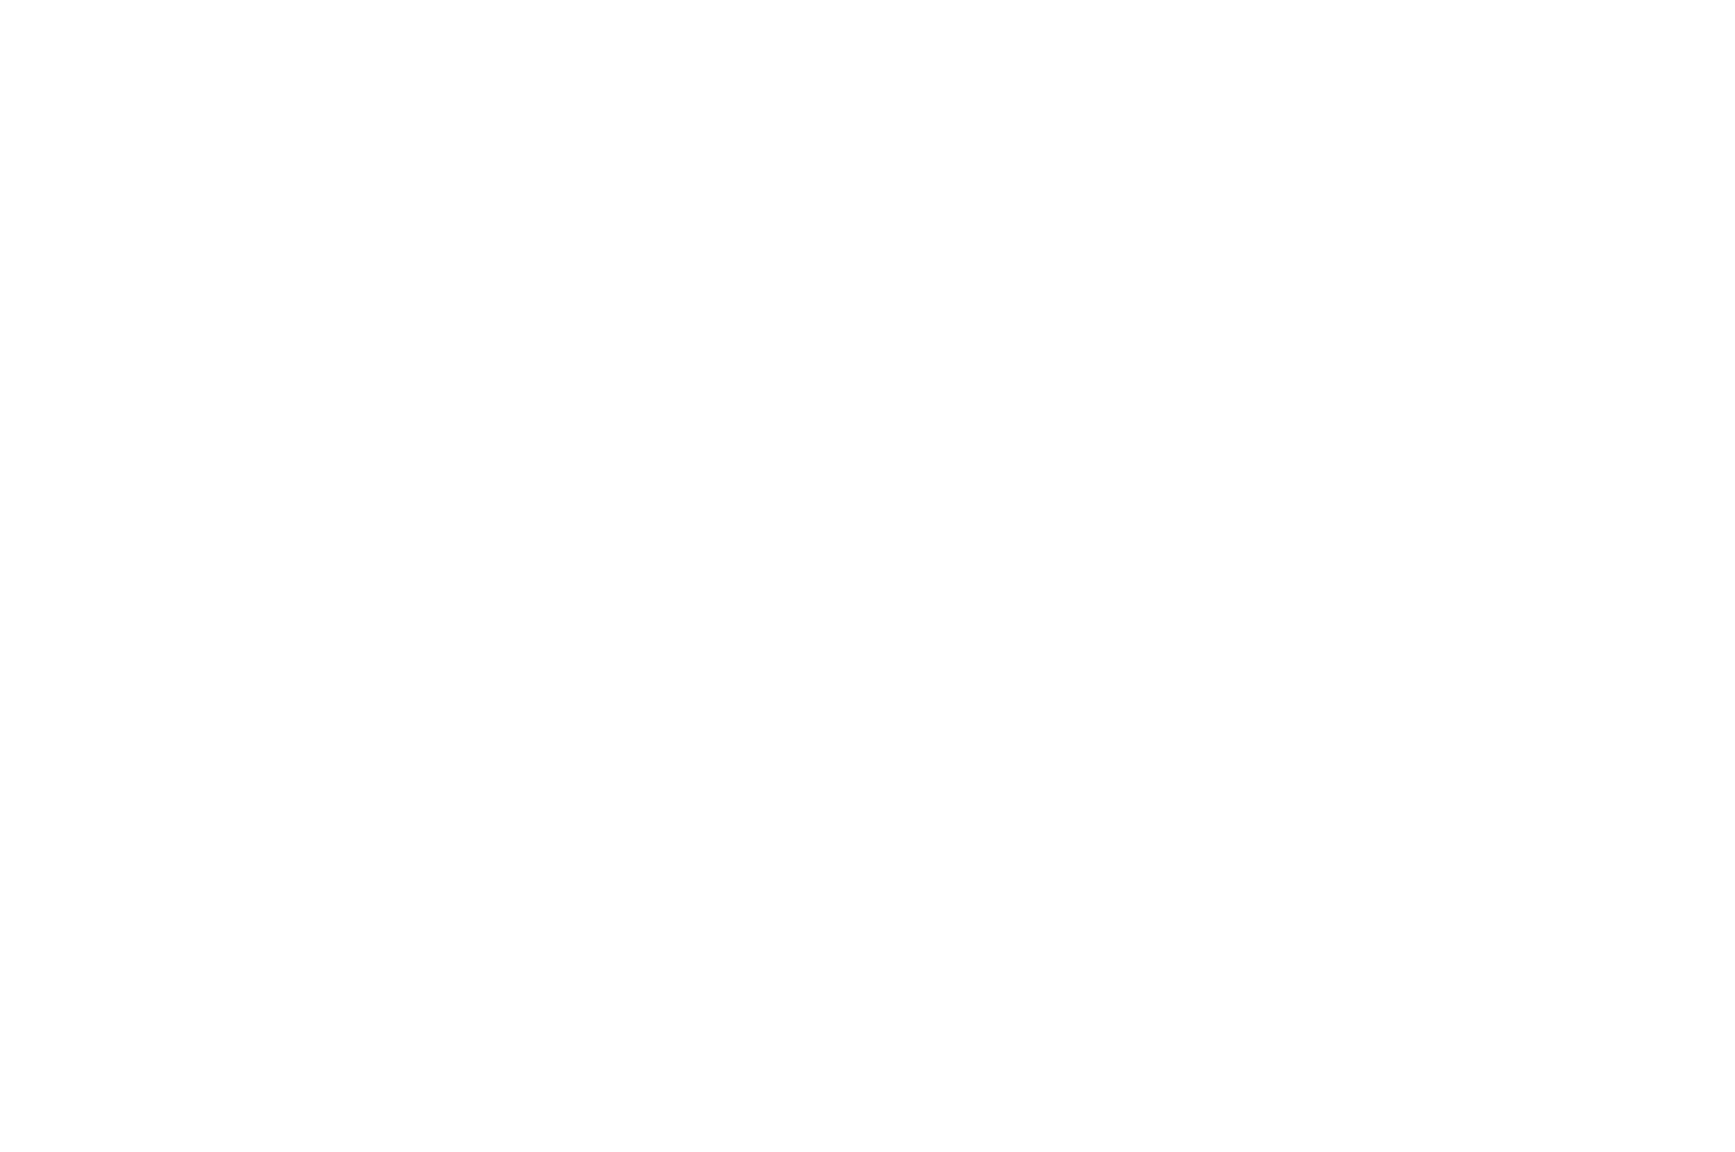 ICVM Best Curriculum Award